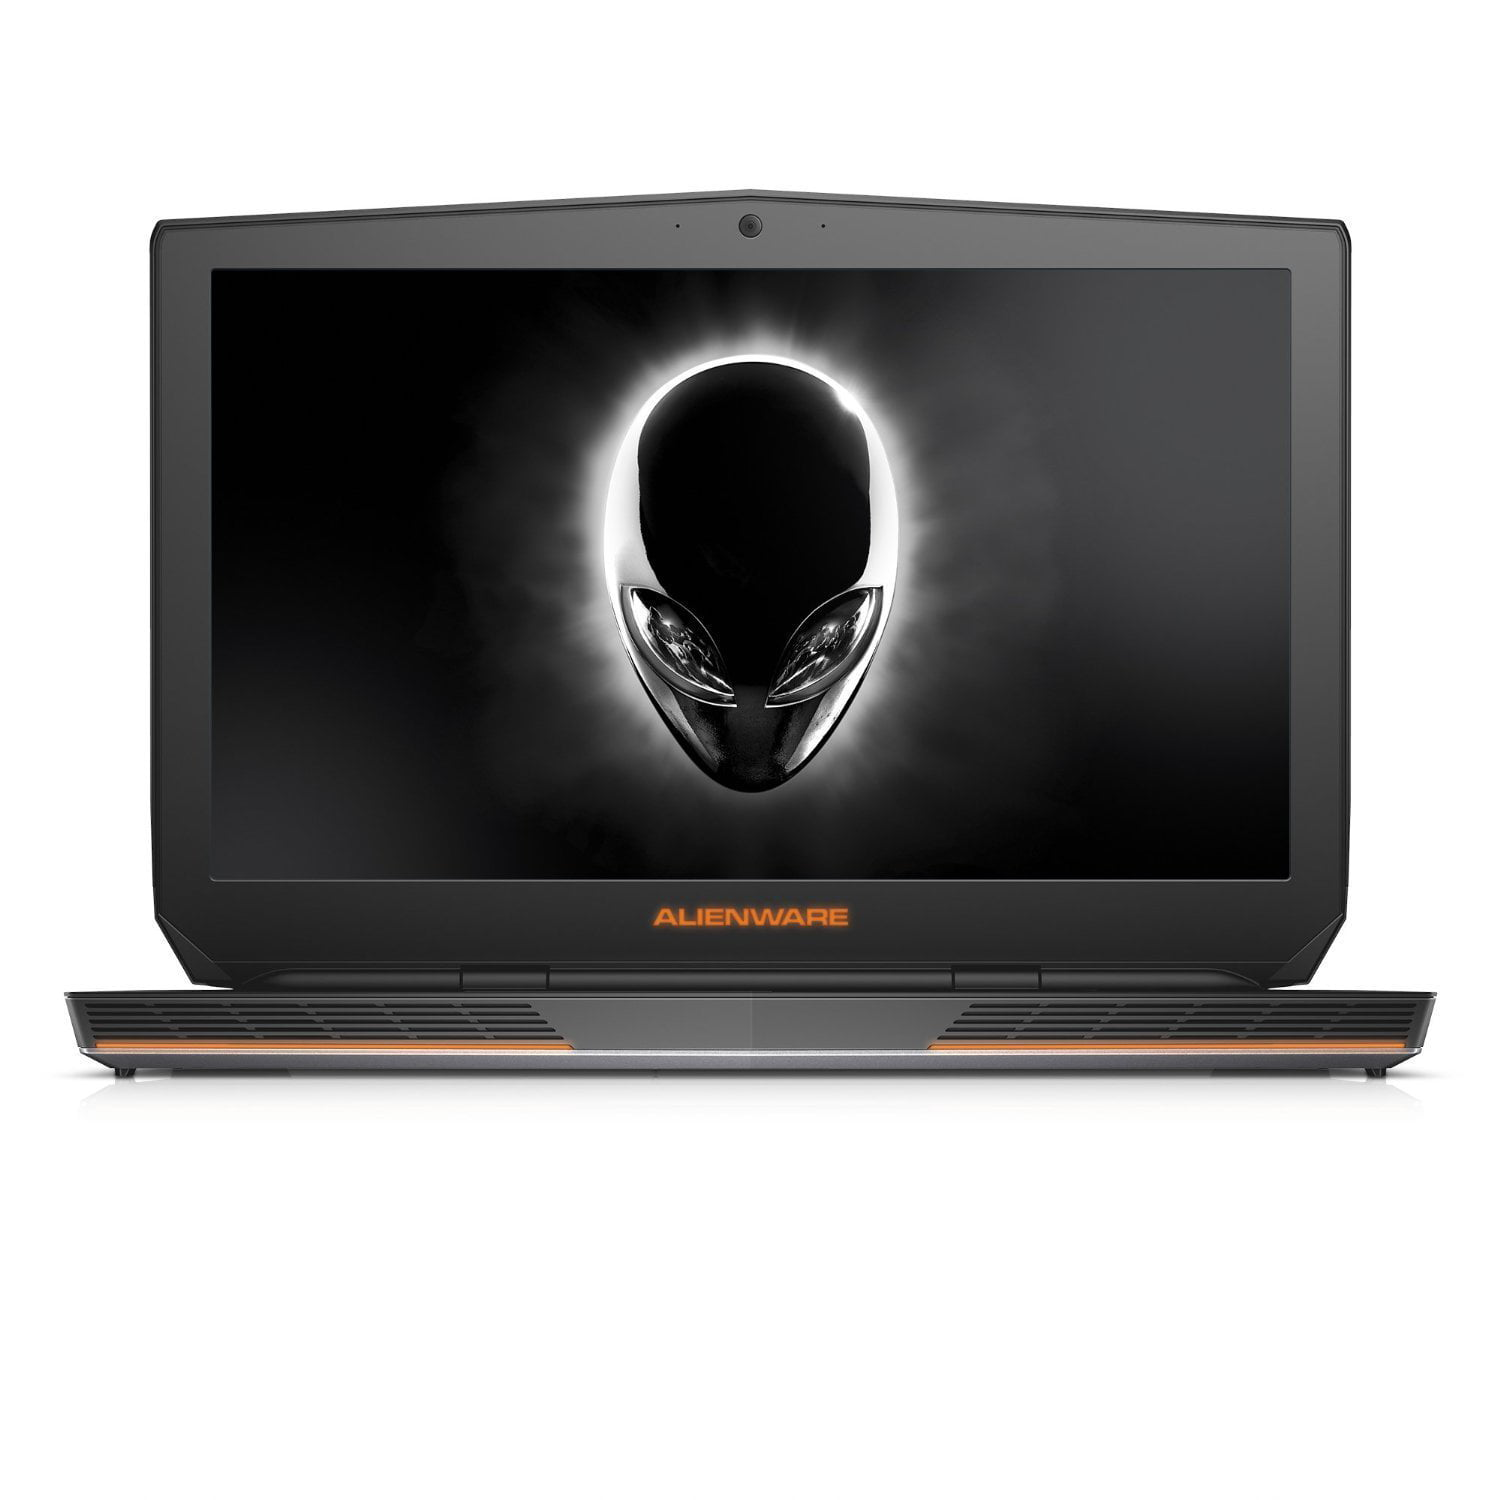 Refurbished Alienware 17 AW17R3 17.3-Inch Full HD Gaming Laptop Intel Core i7-6700HQ UP to 3.5GHz, 16GB Memory, 1536GB... by Alienware